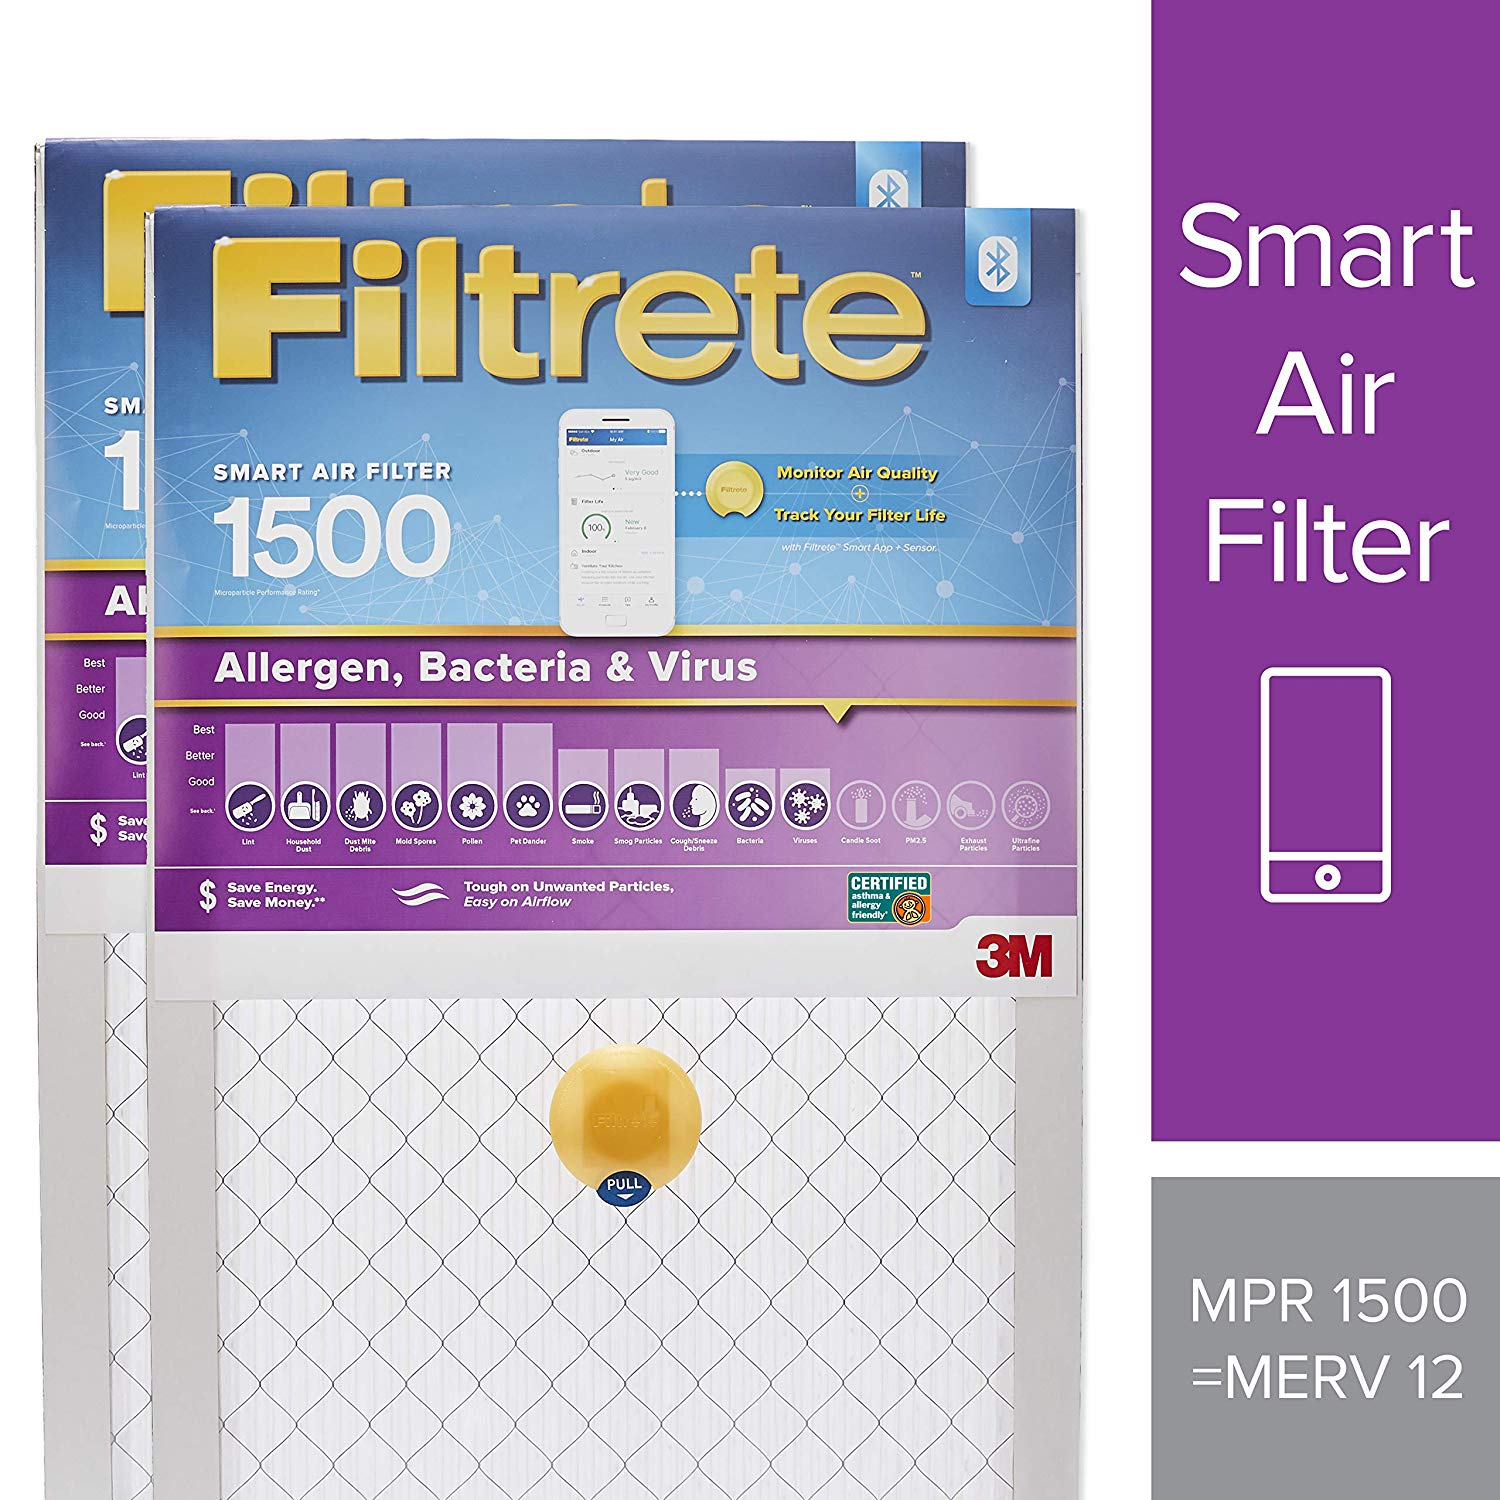 Amazon: 10% Off 2-Pack Filtrete Smart Filters - From $37.10 + Free Shipping w/ Prime